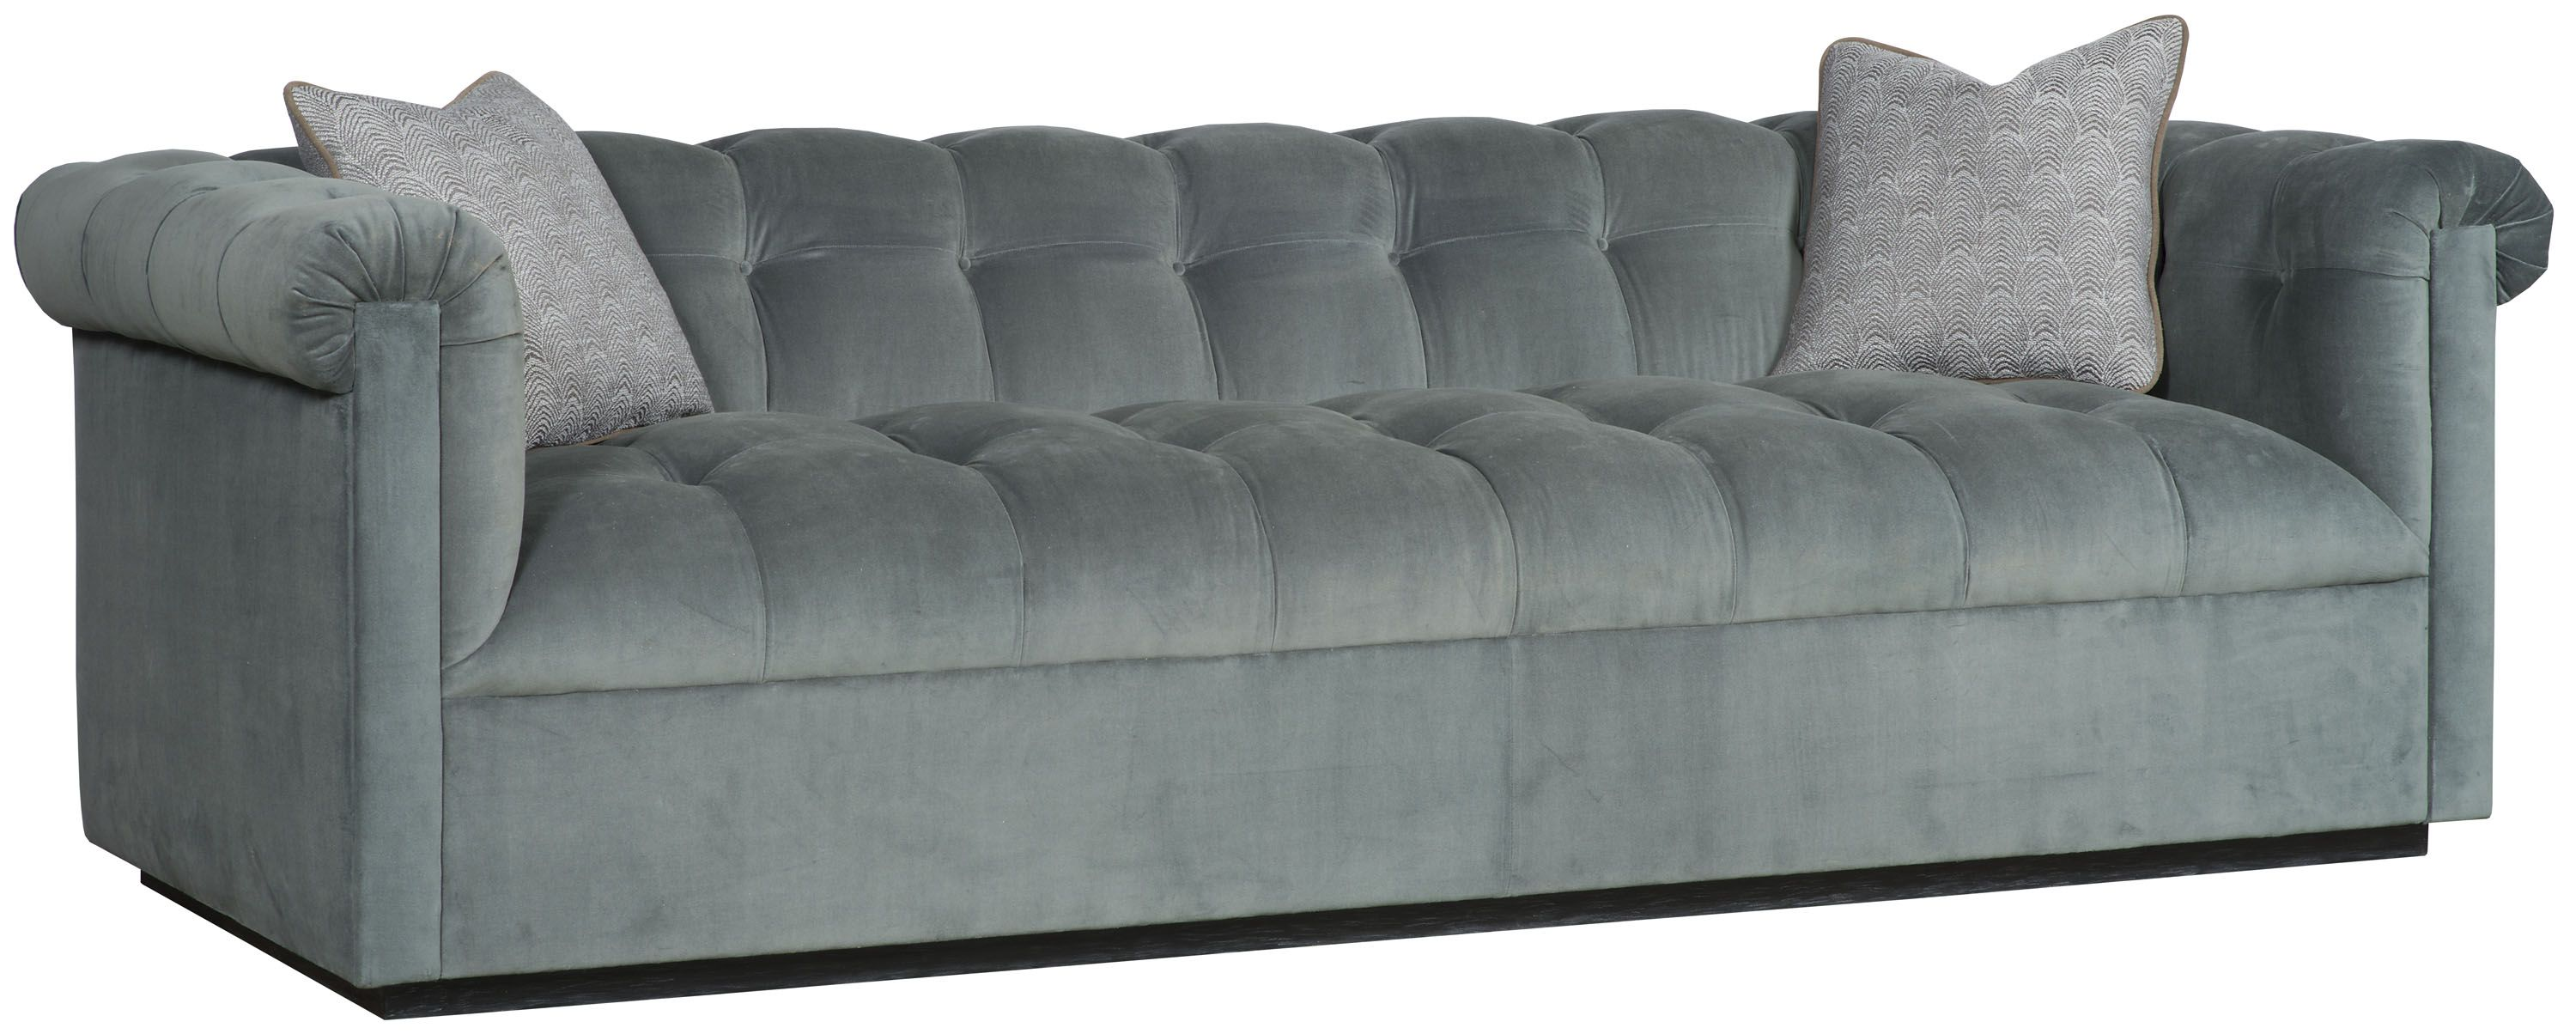 Designed By Vanguard Available At Robb Stucky Vanguard Furniture Sofa Furniture